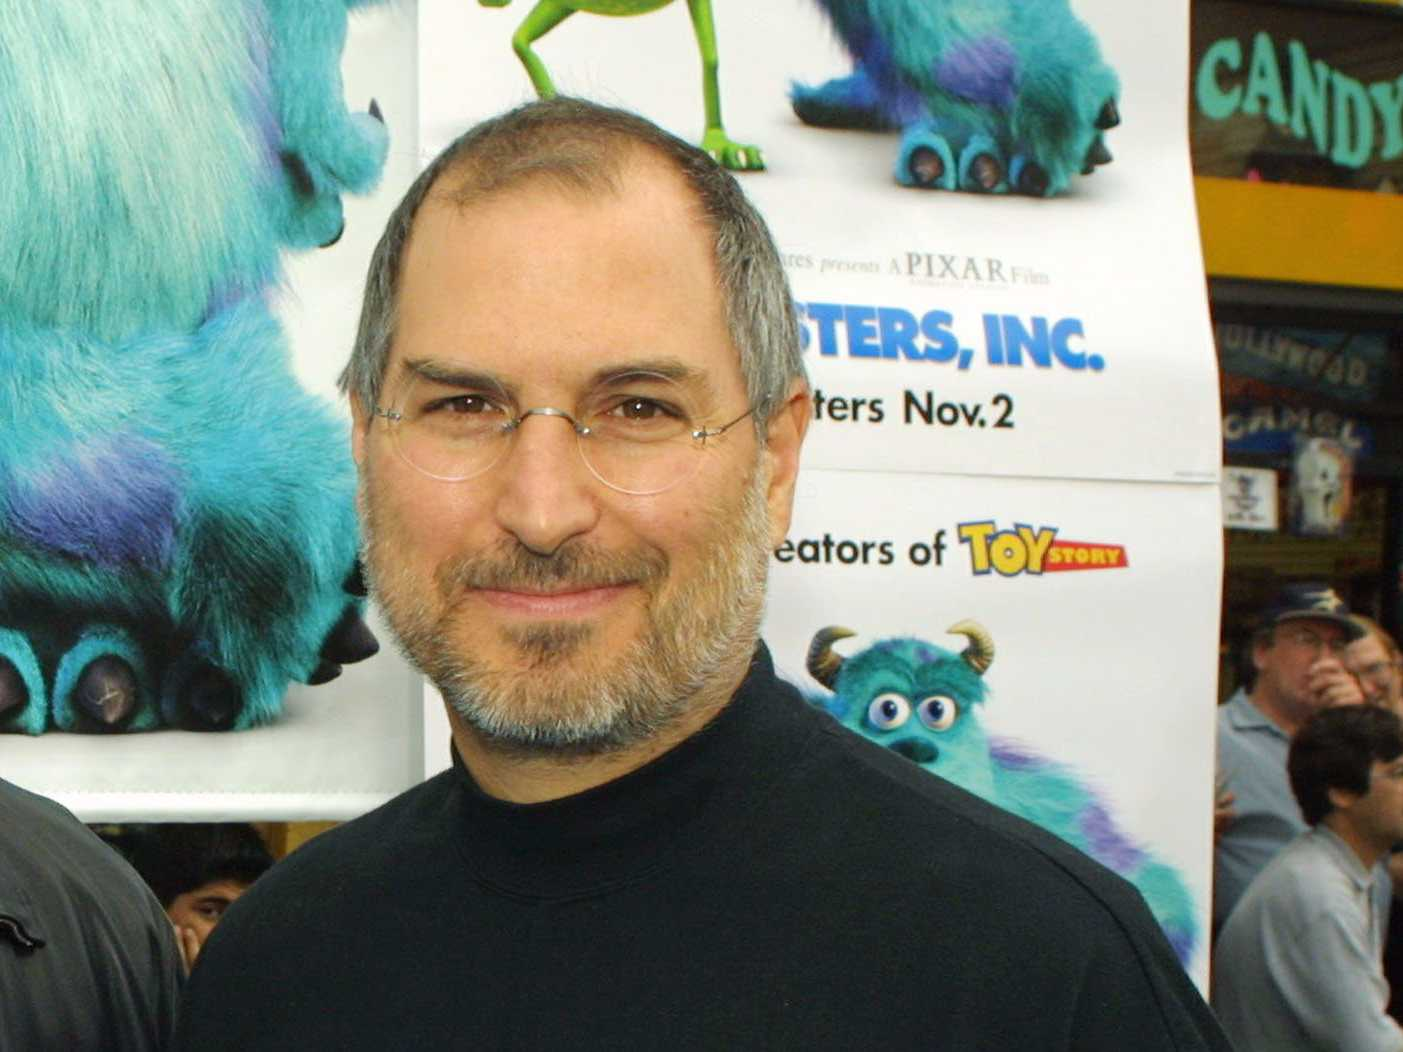 Steve Jobs Pixar - iDevice.ro